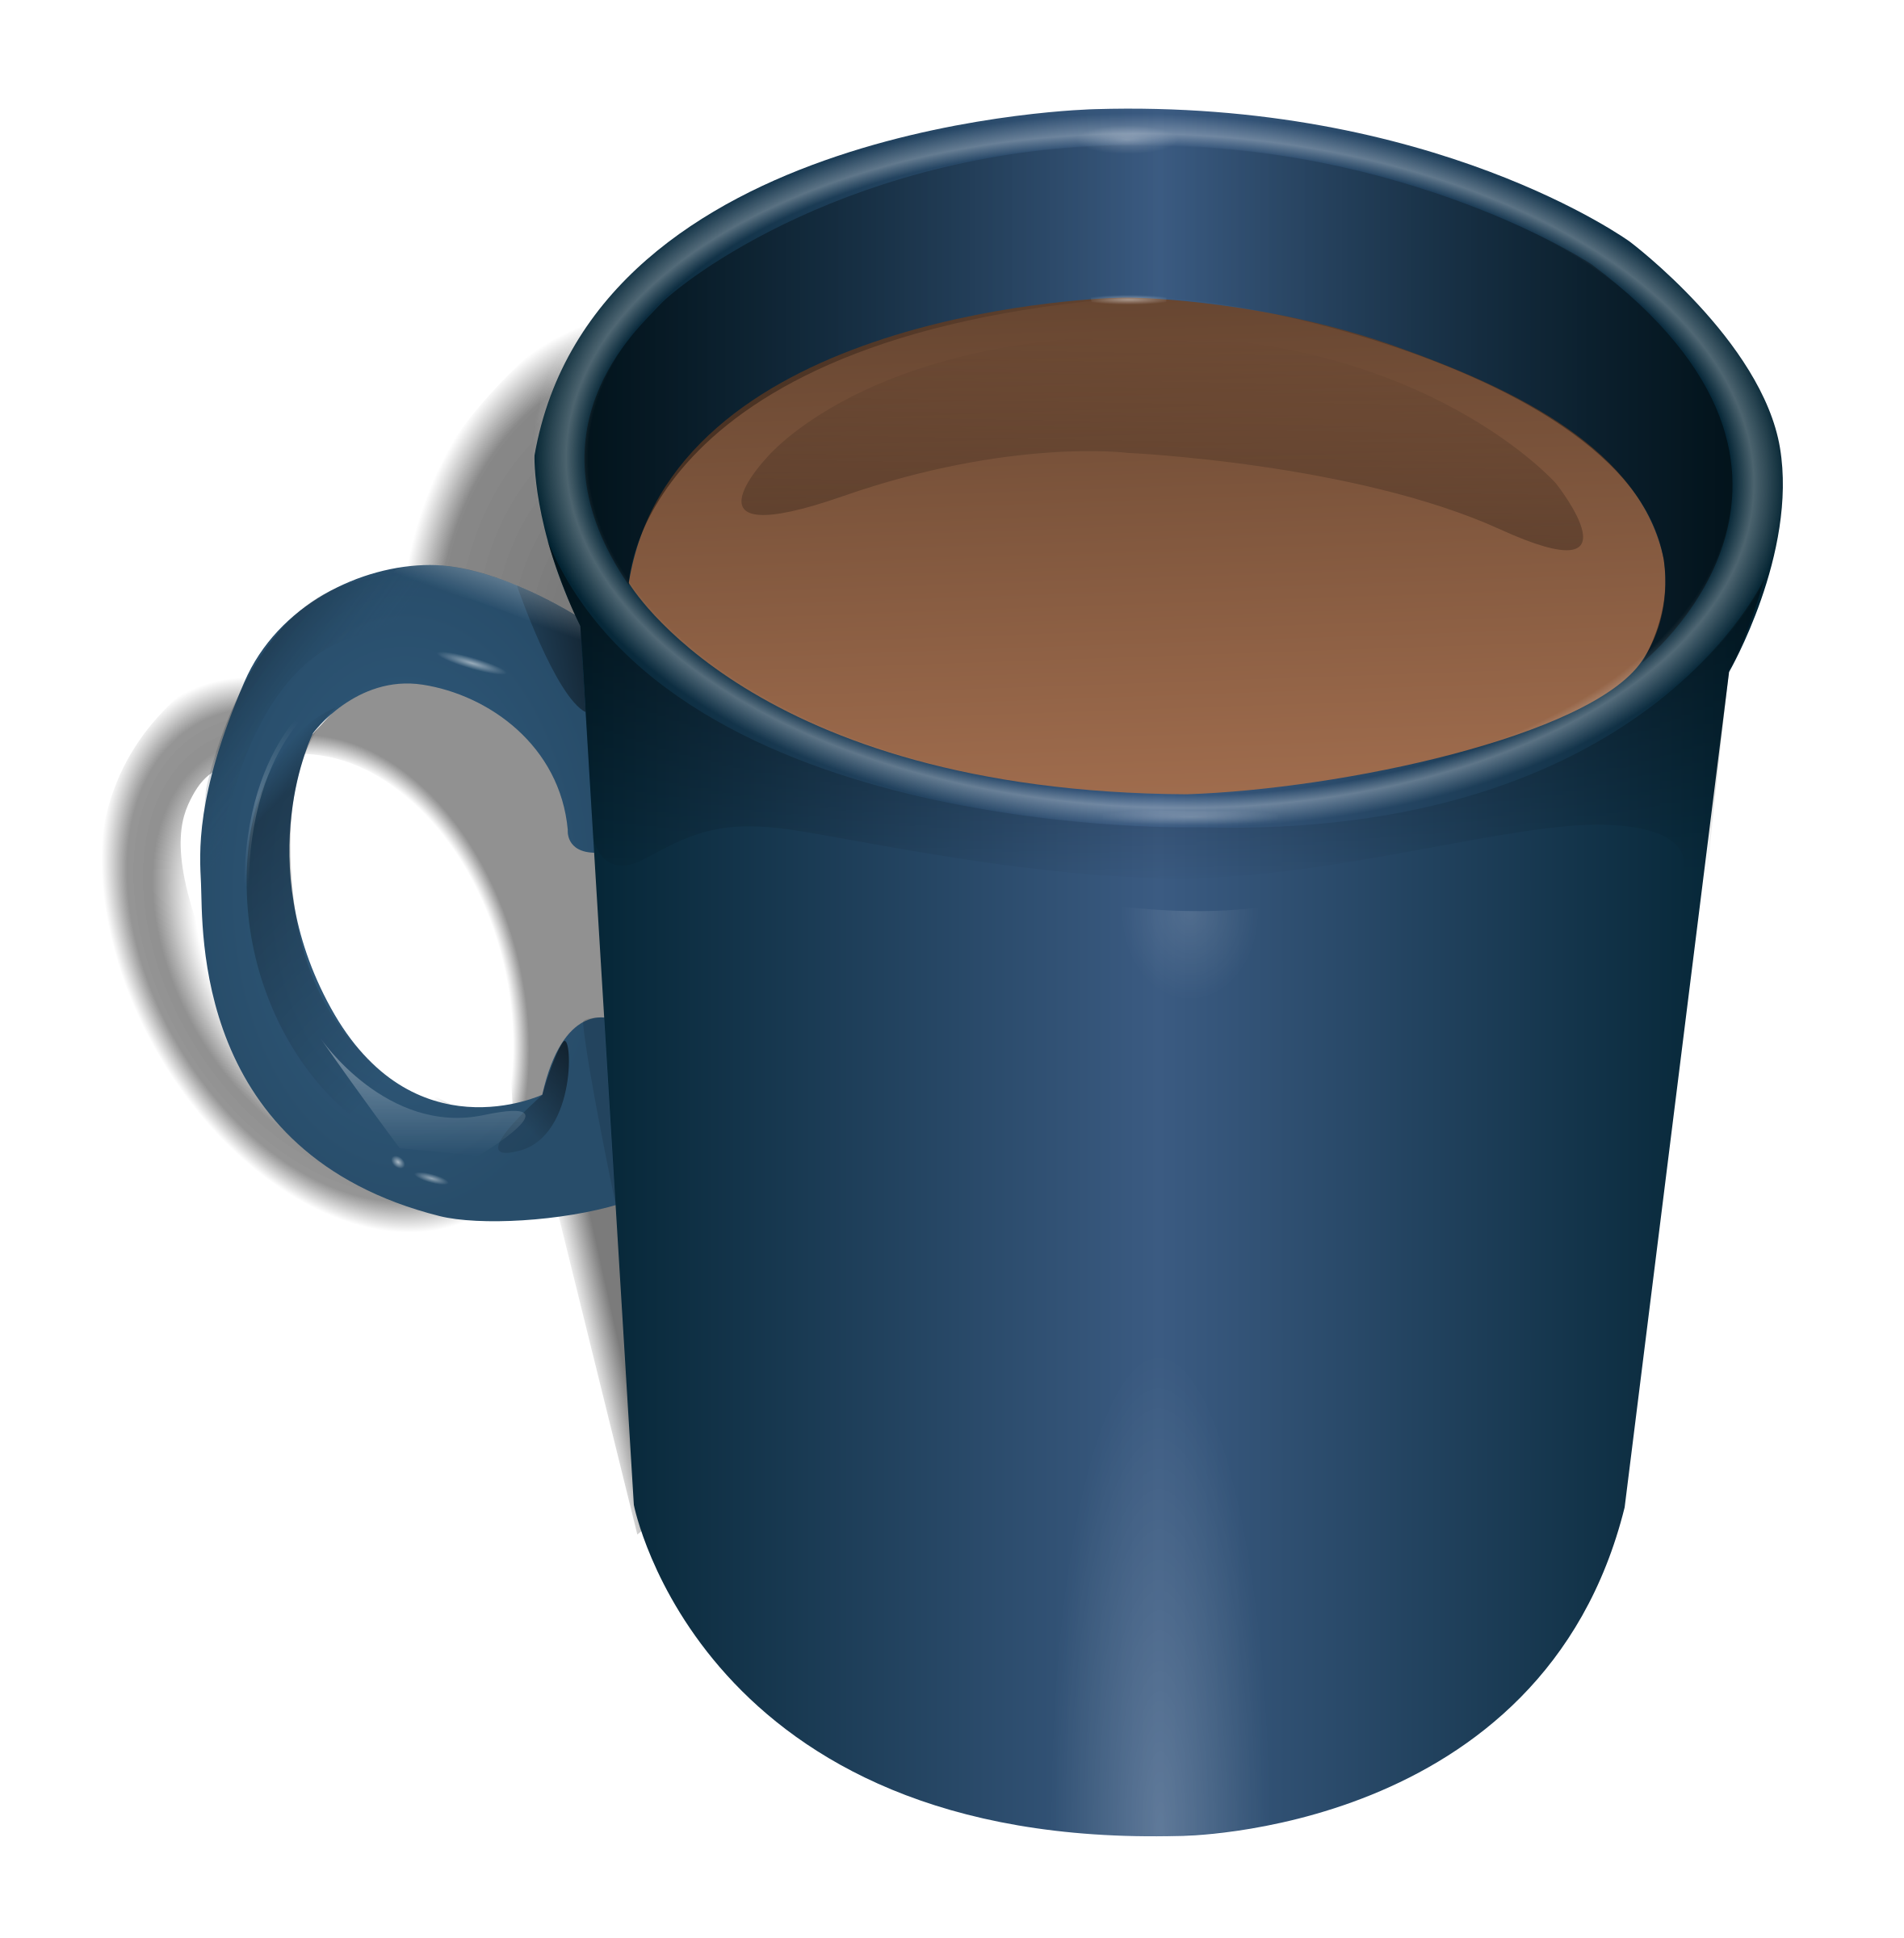 Coffee Mug by hairymnstr